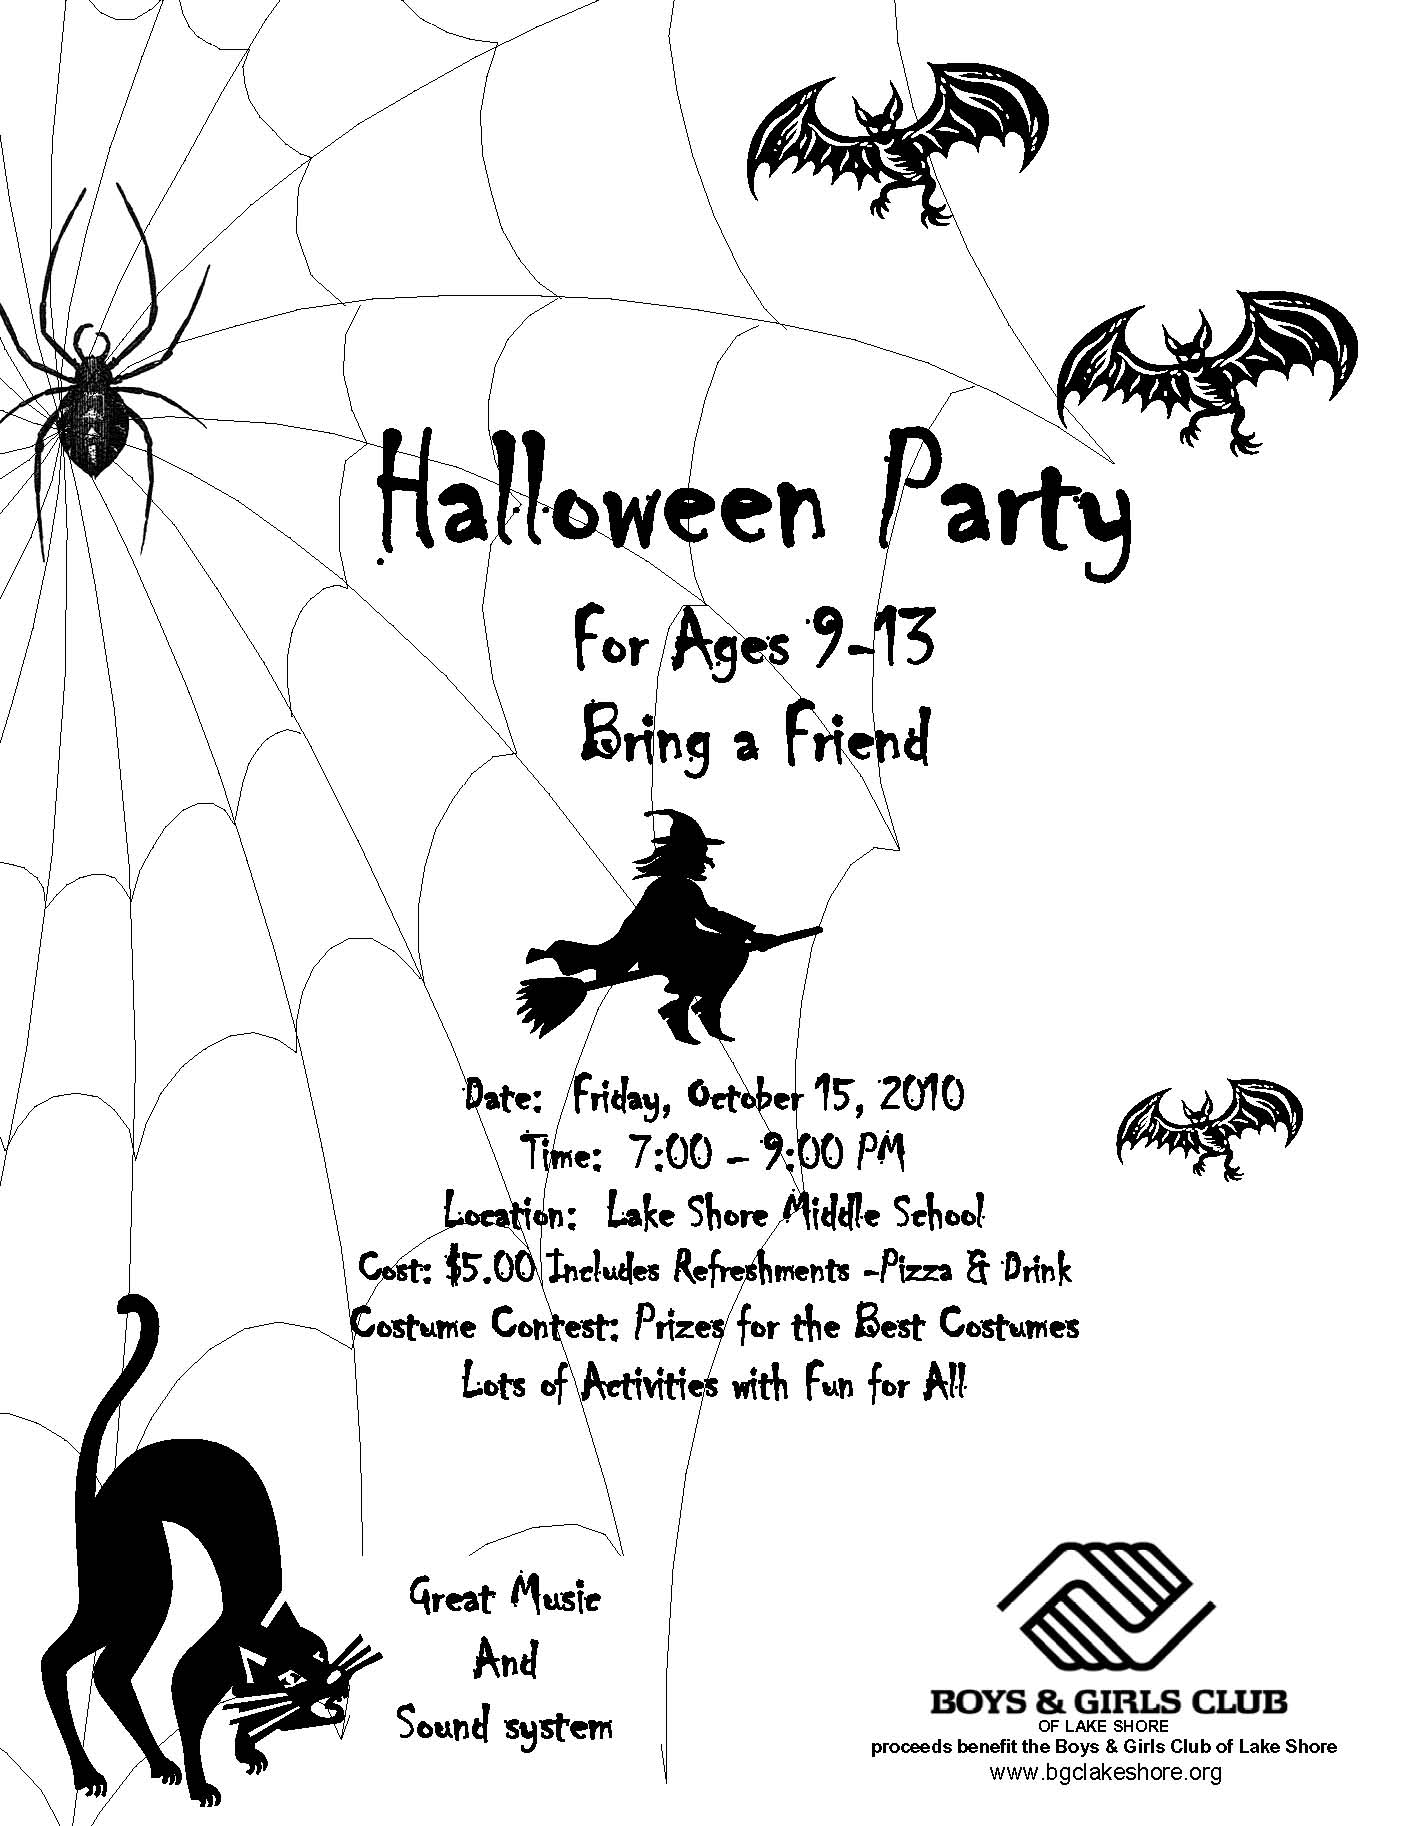 BGCLS Hosting Halloween Party for Kids | Boys & Girls Club of Lake ...